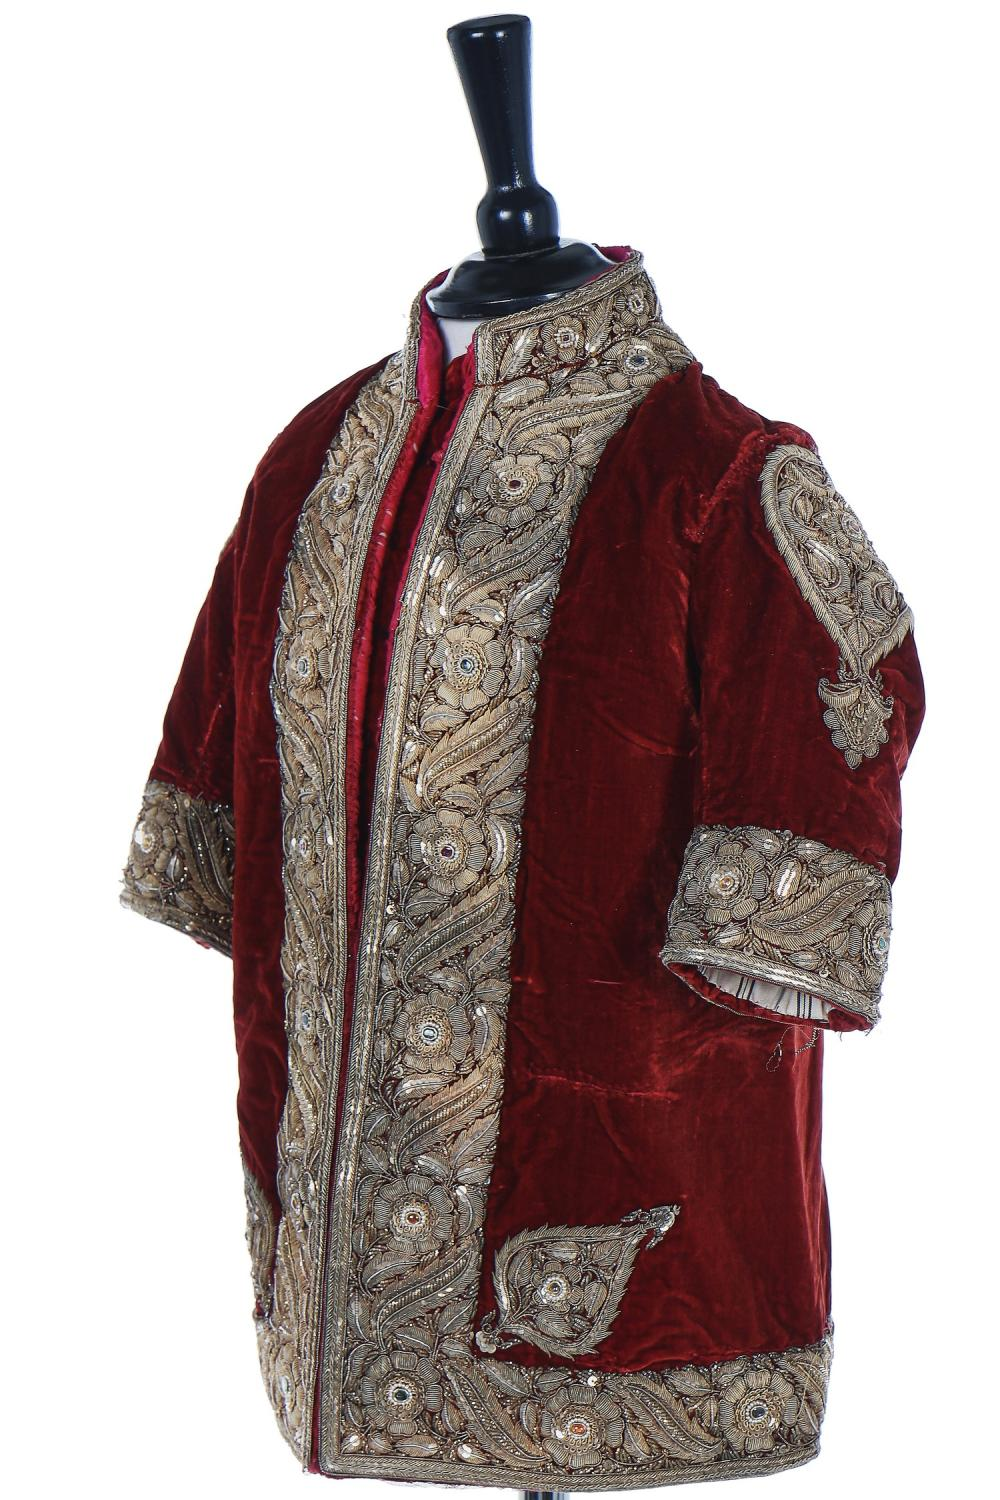 A boy's embroidered scarlet velvet court coat, Indian, late 19th century,